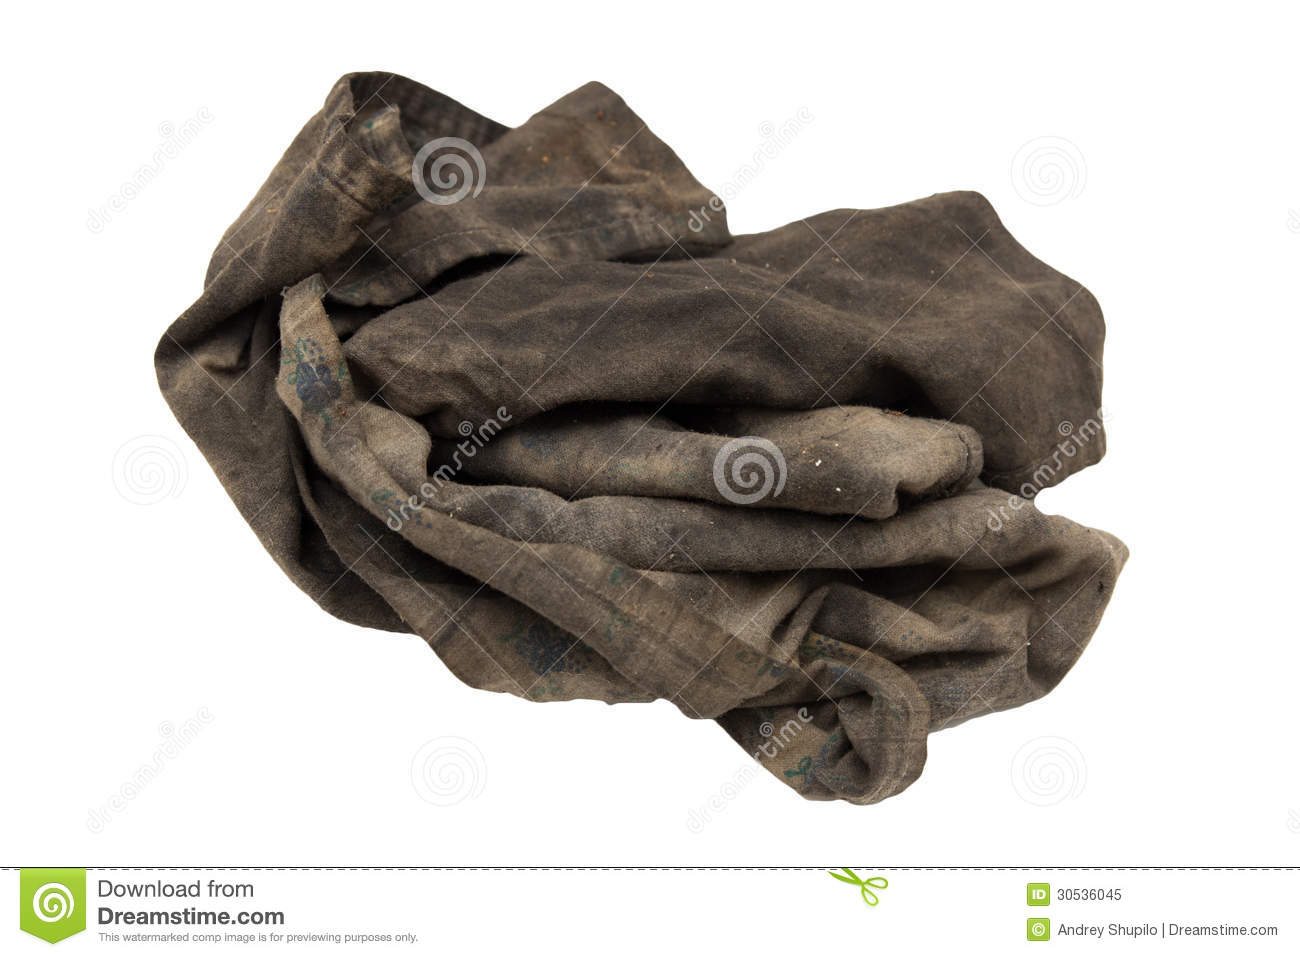 d6083af36ce4d Dirty rag stock image. Image of product, isolated, clean - 30536045